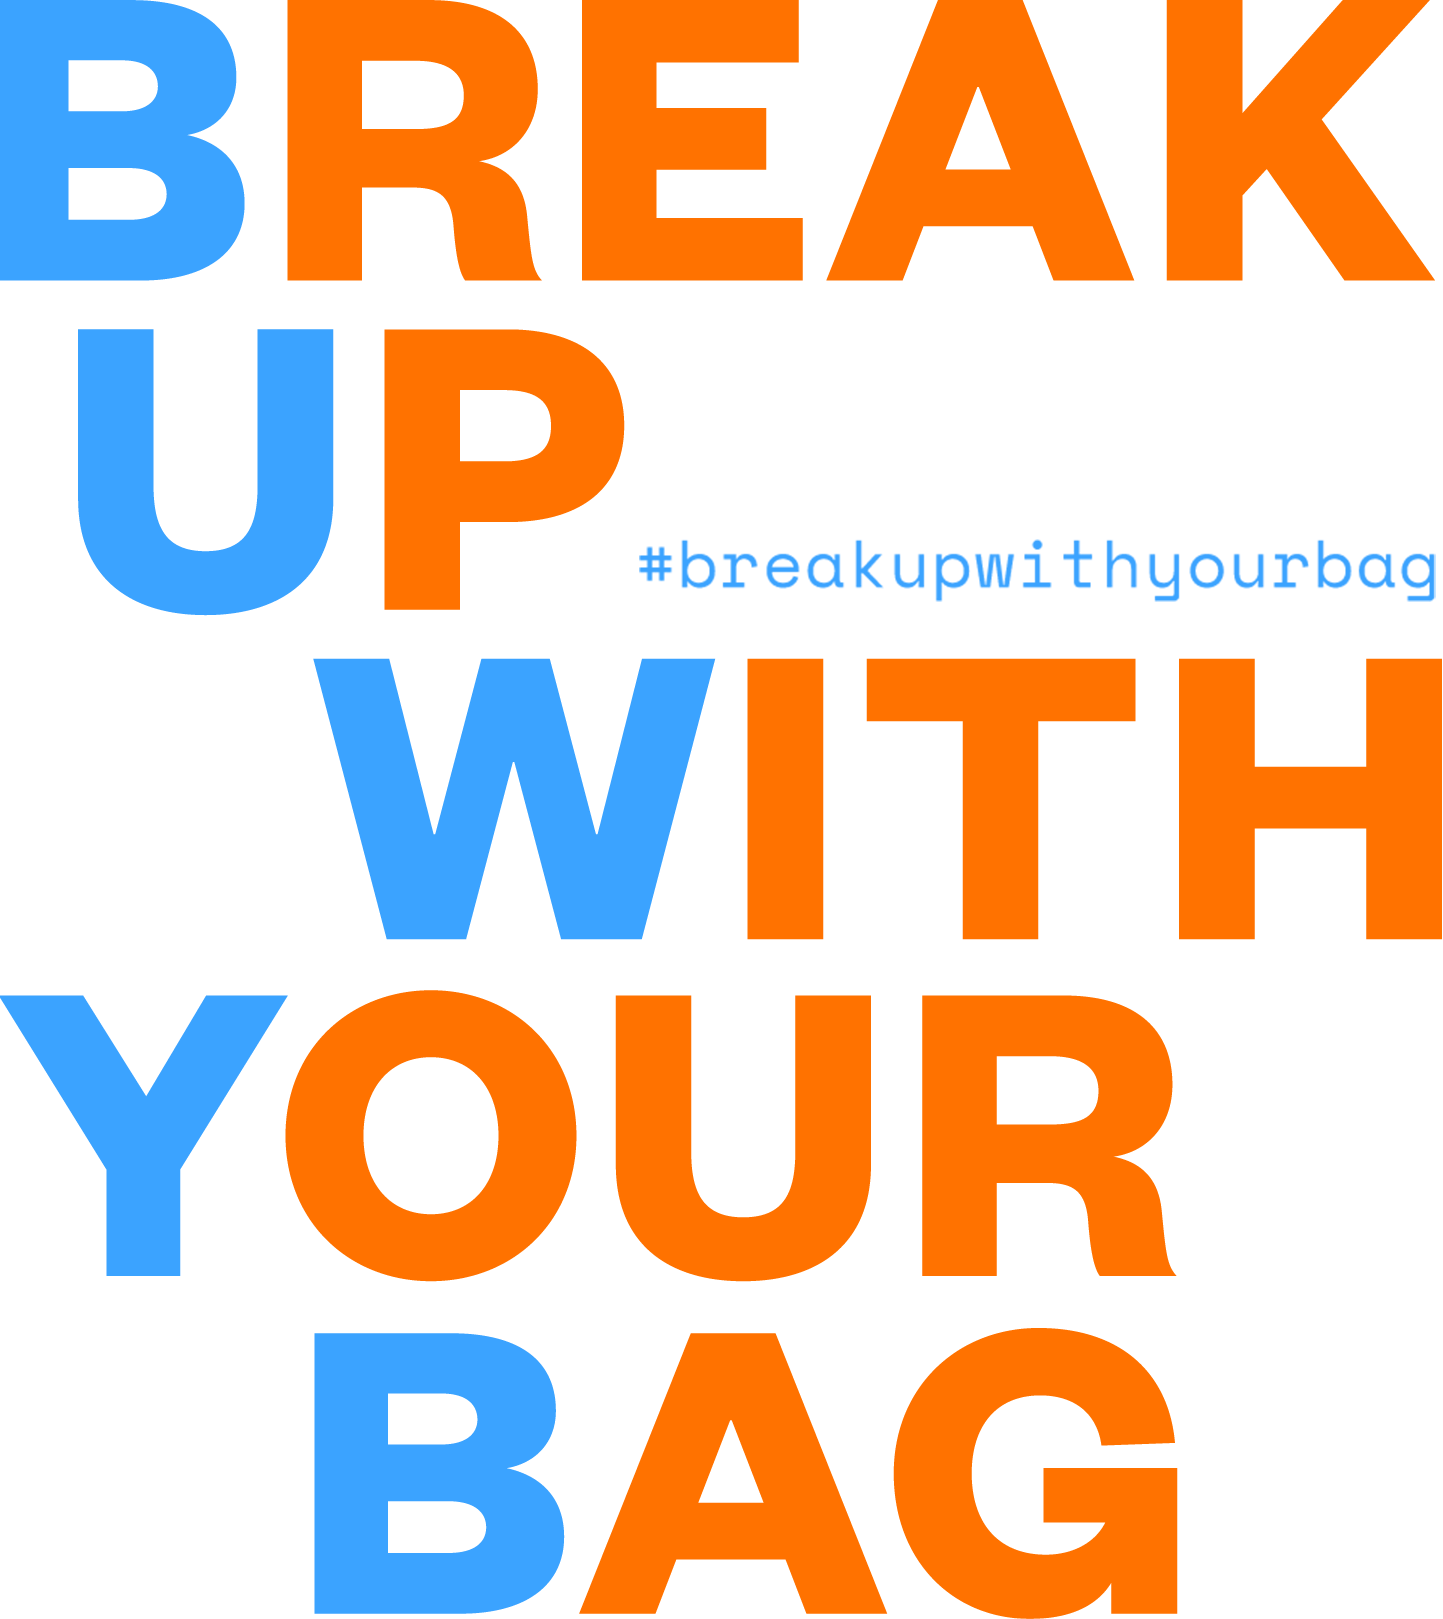 Break up with your bag #breakupwithyourbag